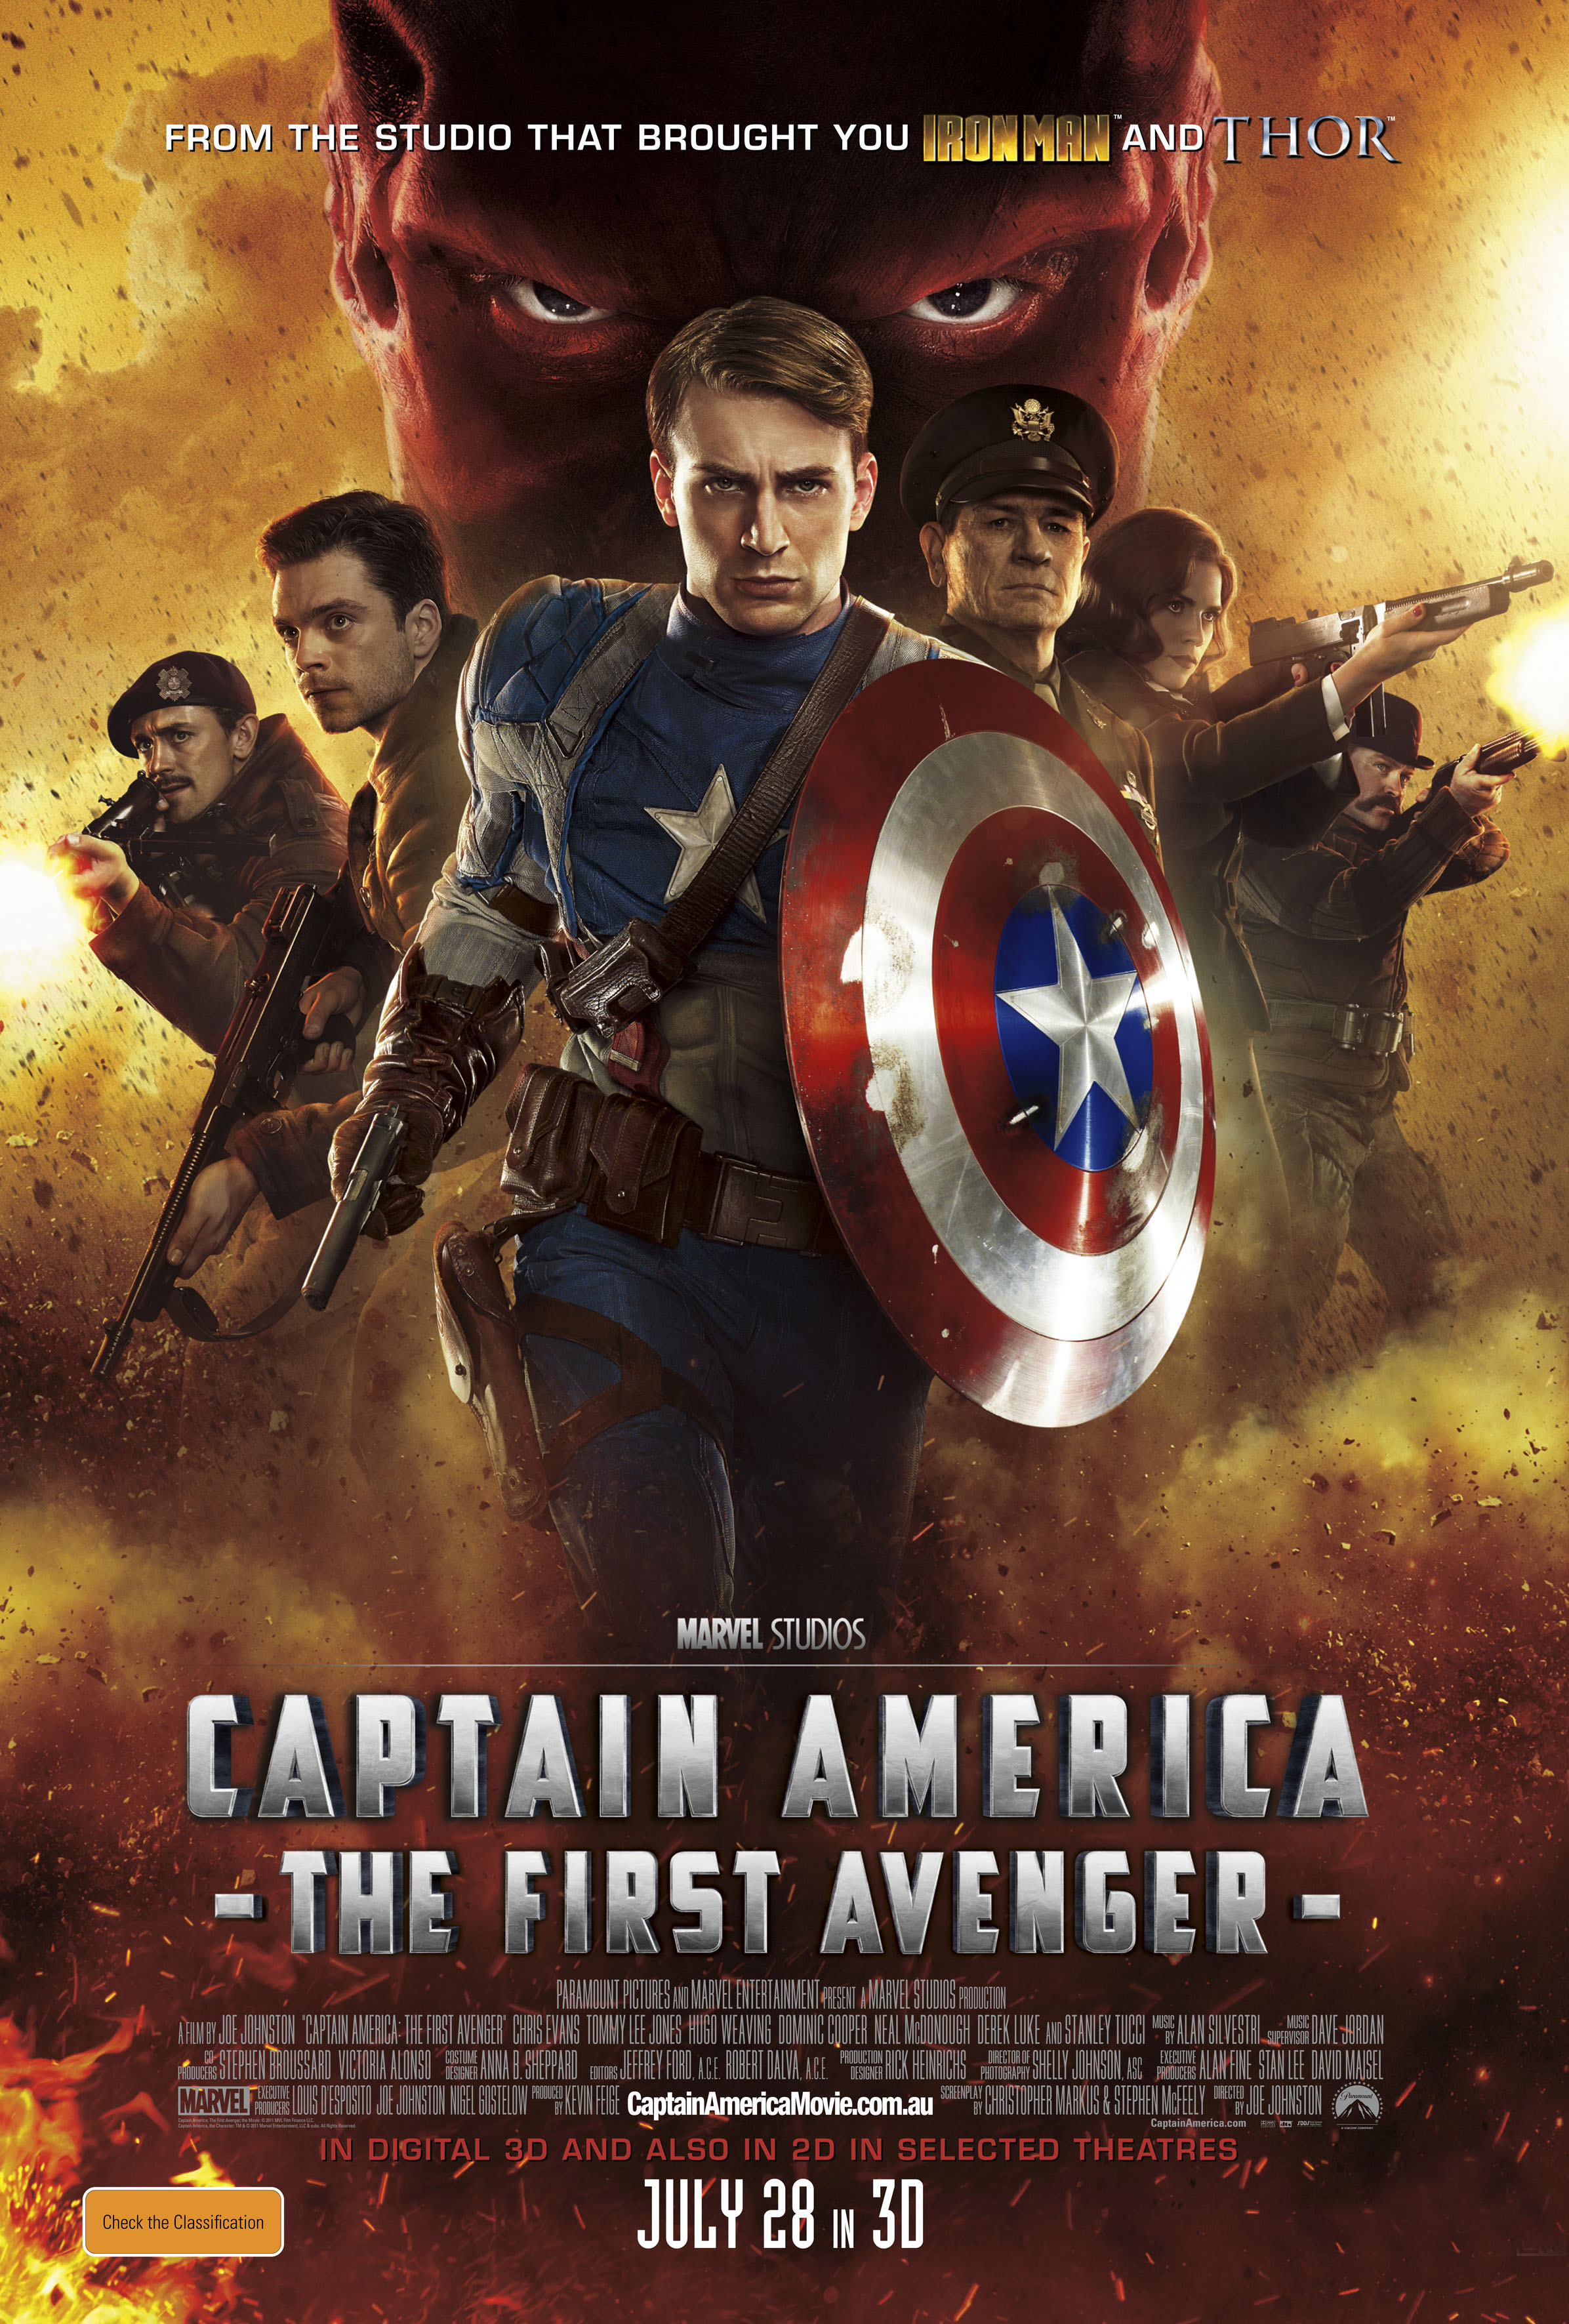 Captain America: The First Avenger - One-sheet (Australia)